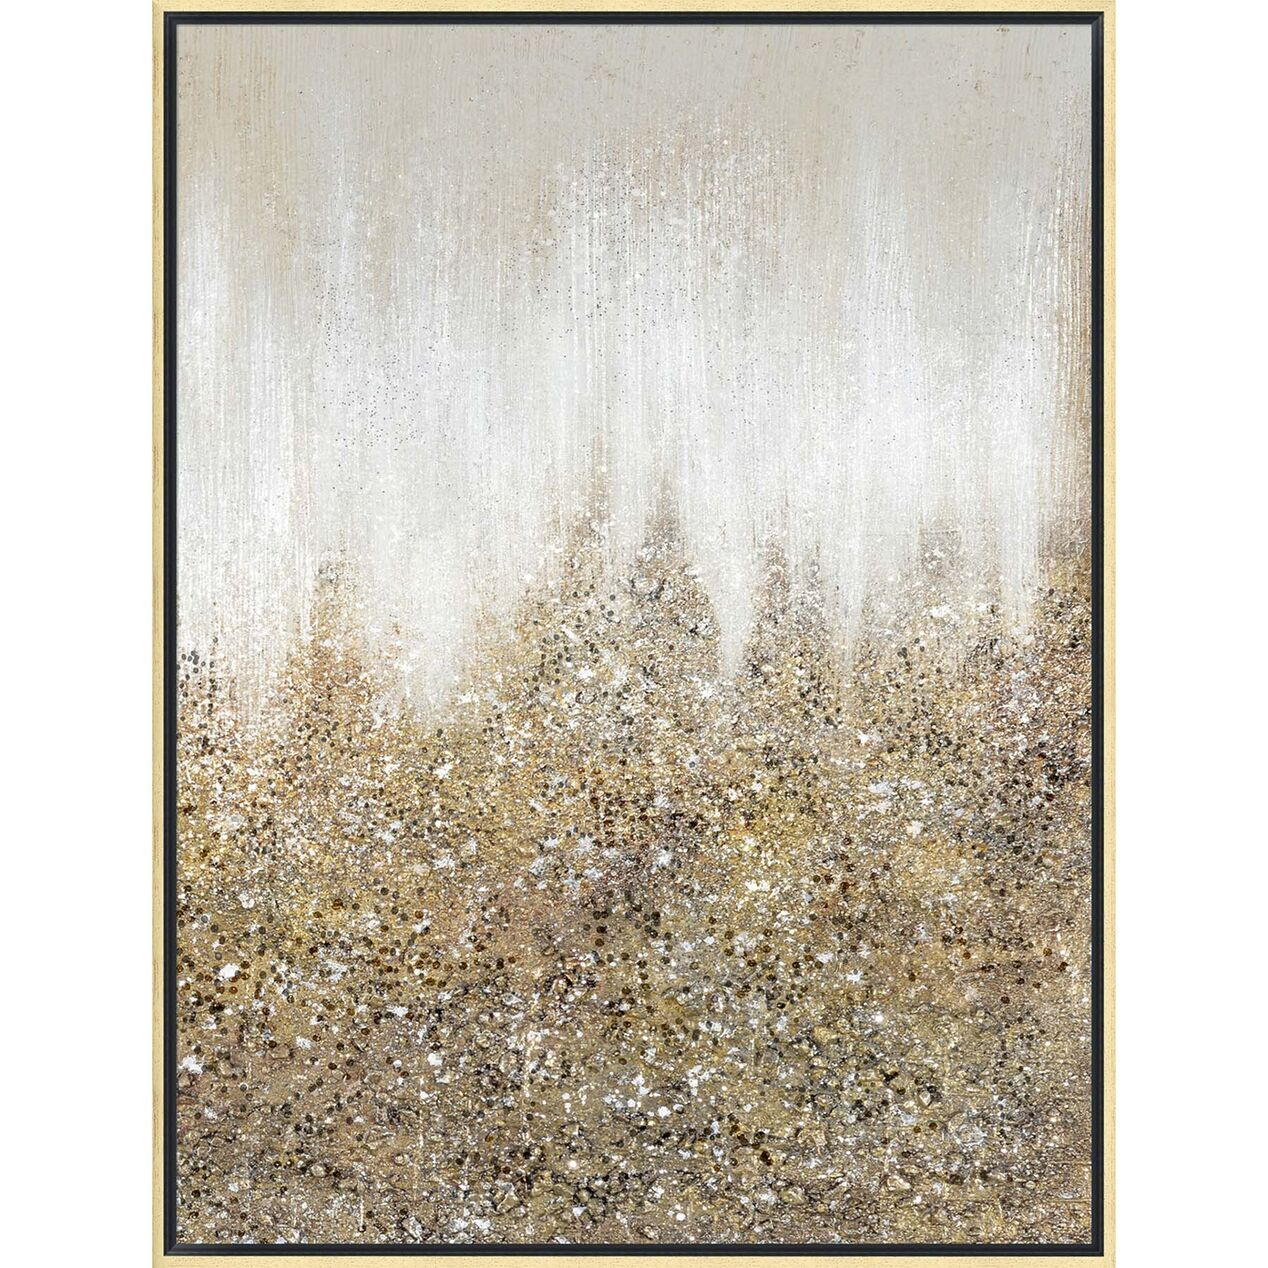 Gold Glitter Abstract Canvas Wall Art 30 X 40 At Home Glitter Wall Art Abstract Canvas Wall Art Wall Canvas